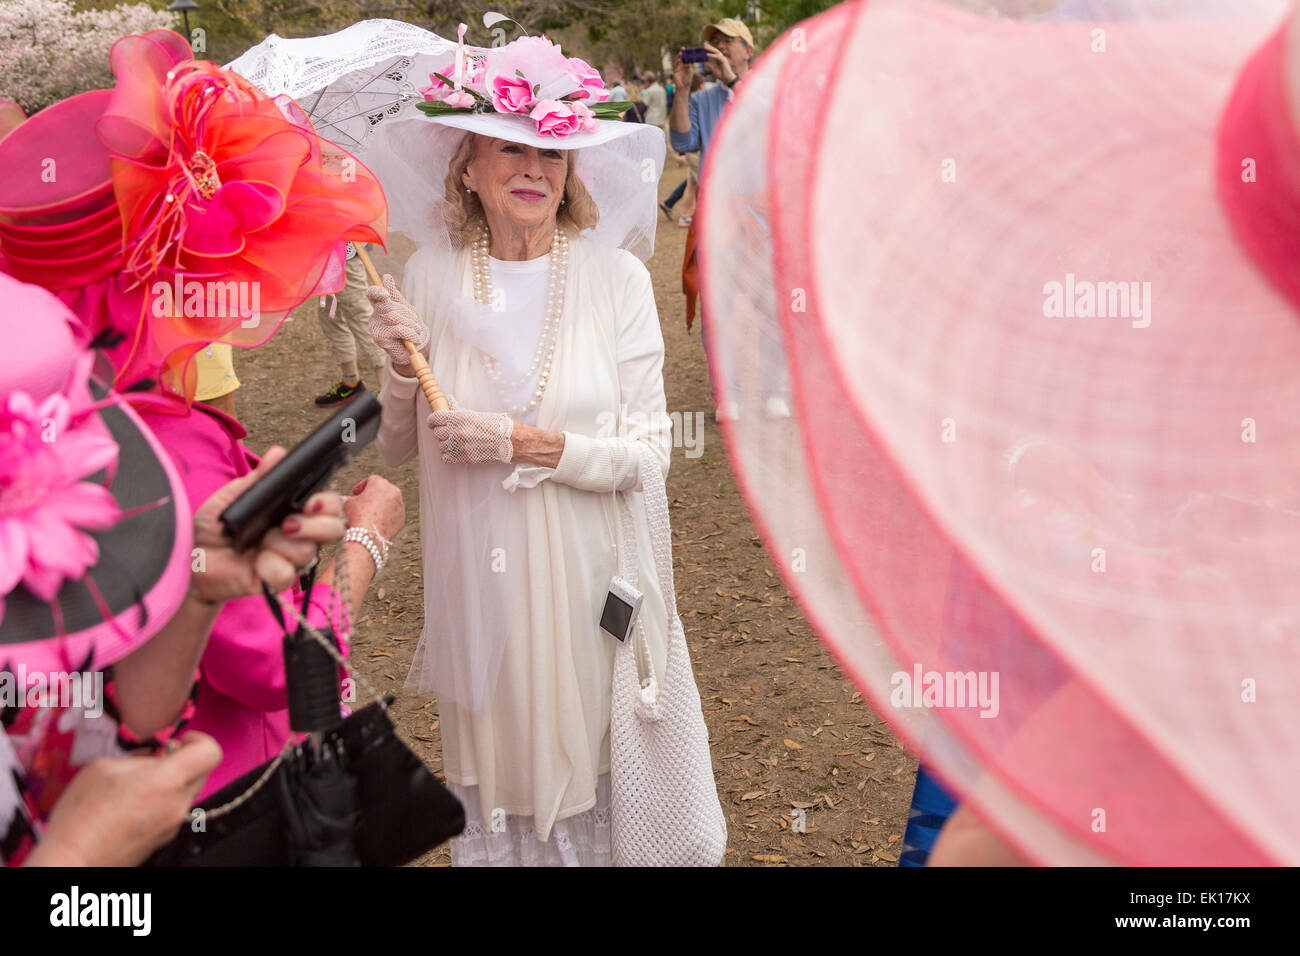 Charleston, South Carolina, USA. 04th Apr, 2015. Charlestonians in their Easter finery during the annual Hat Ladies - Stock Image